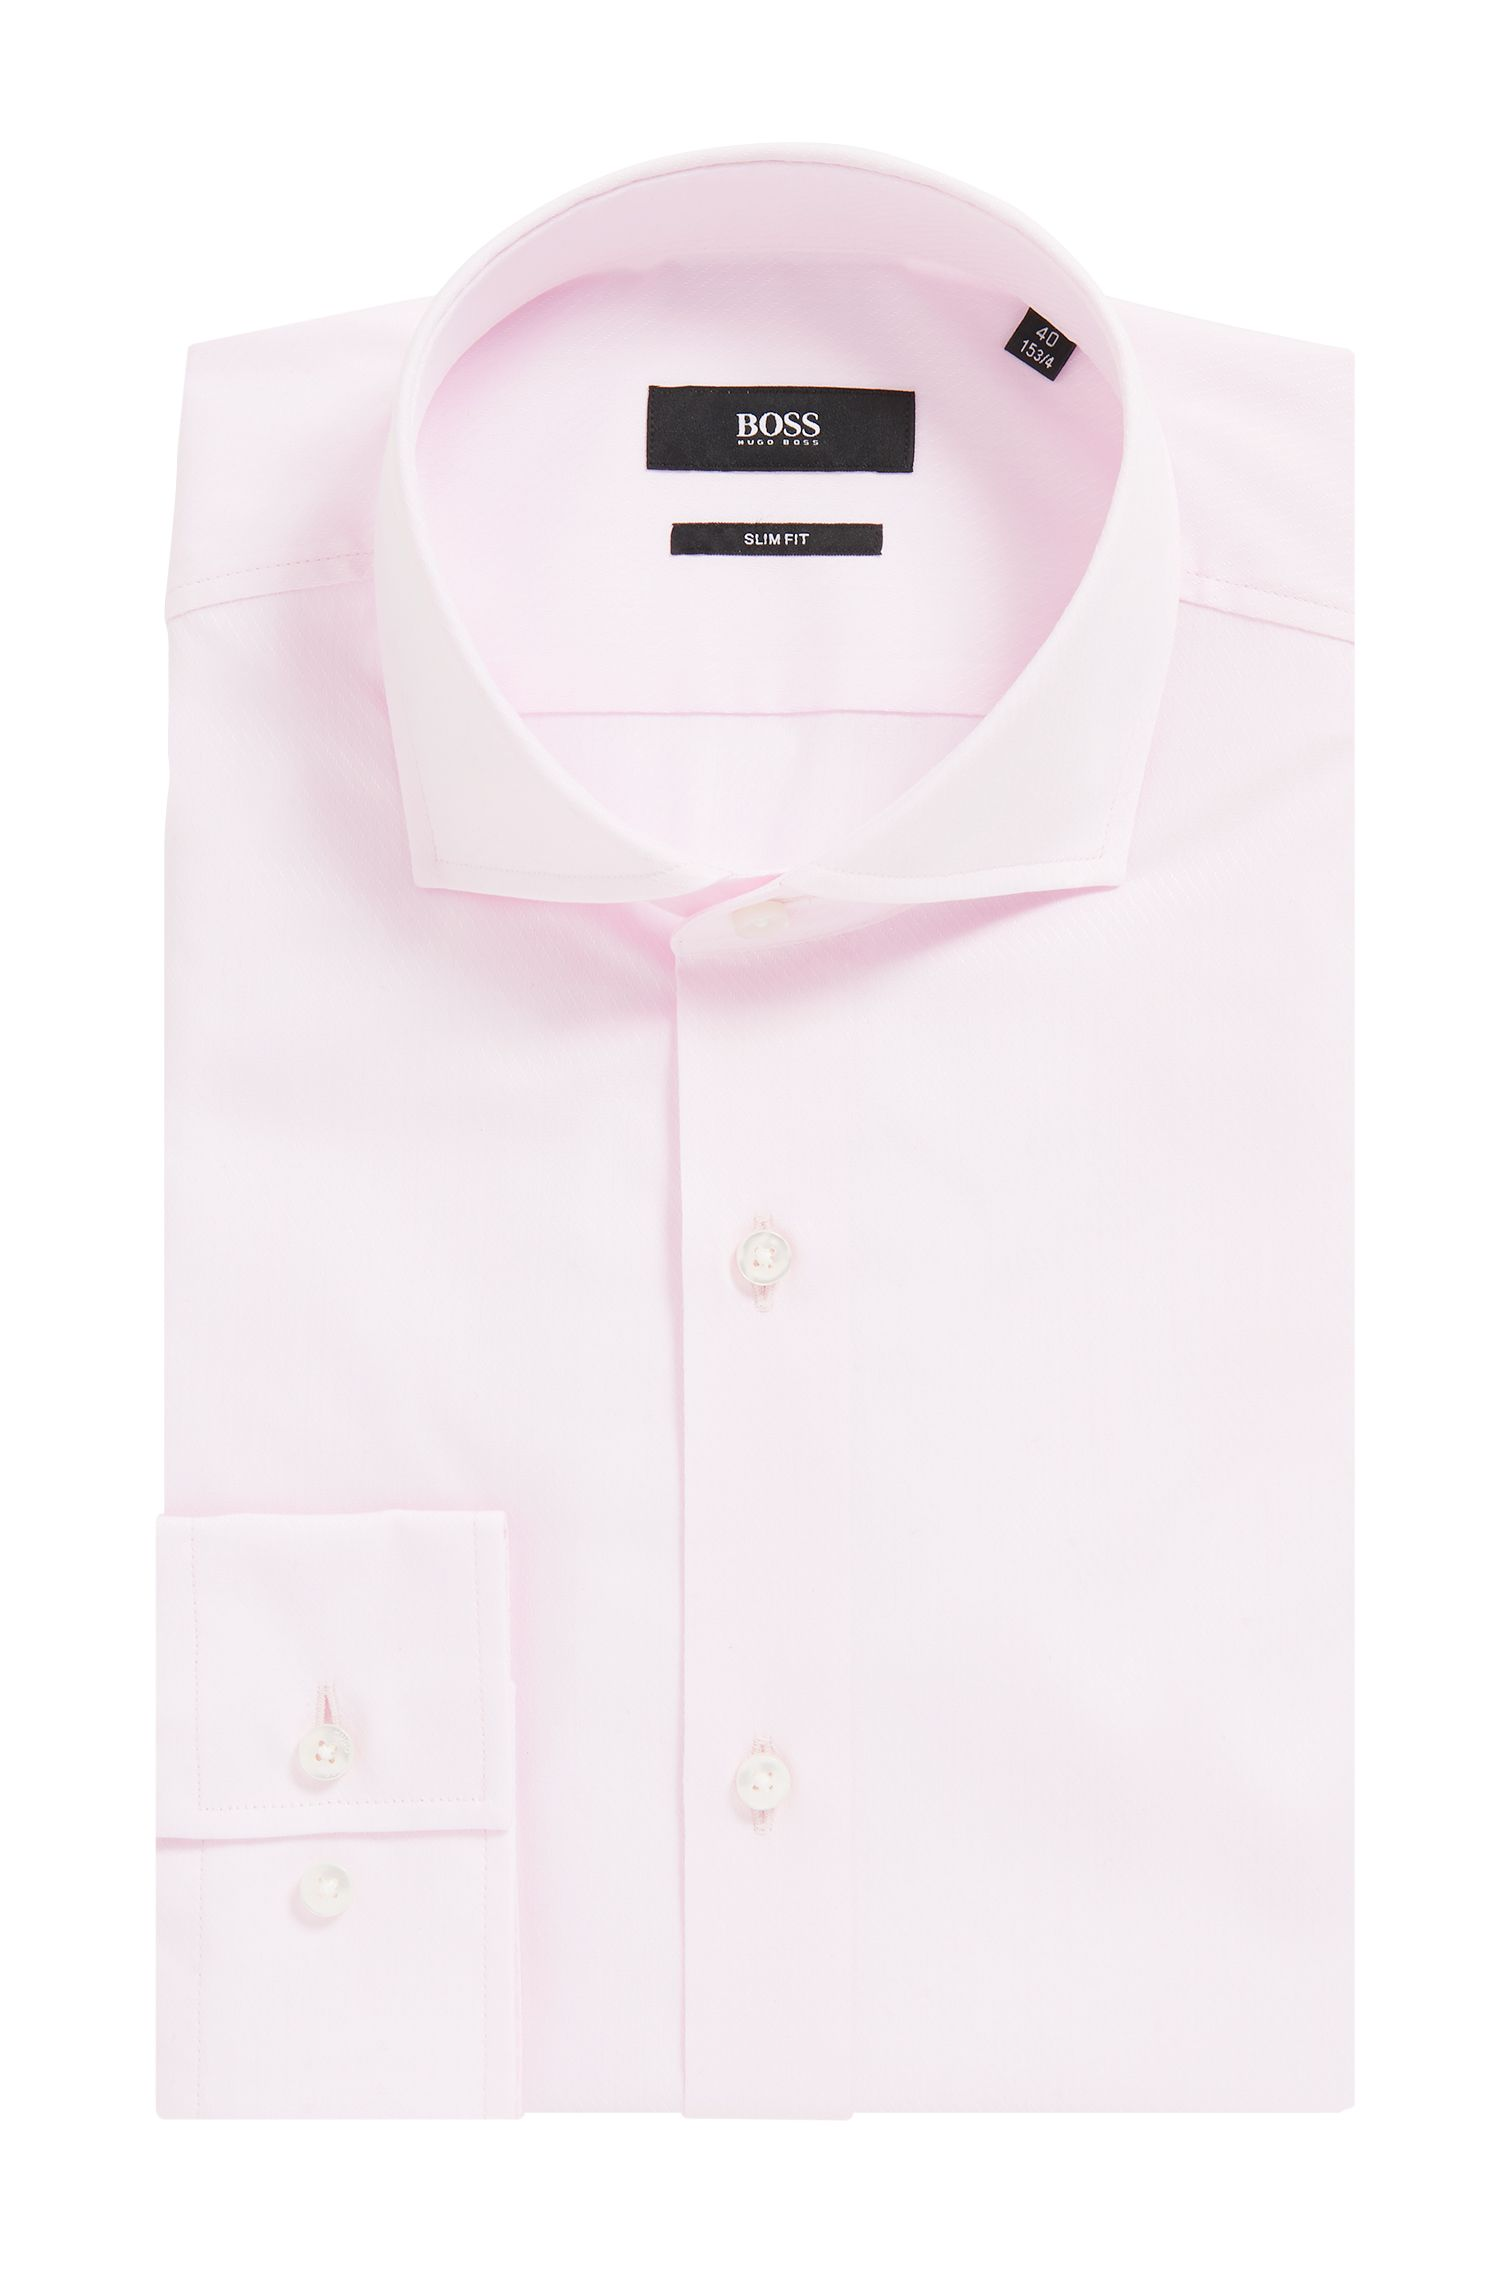 Slim-fit shirt in cotton with diagonal stripes, light pink